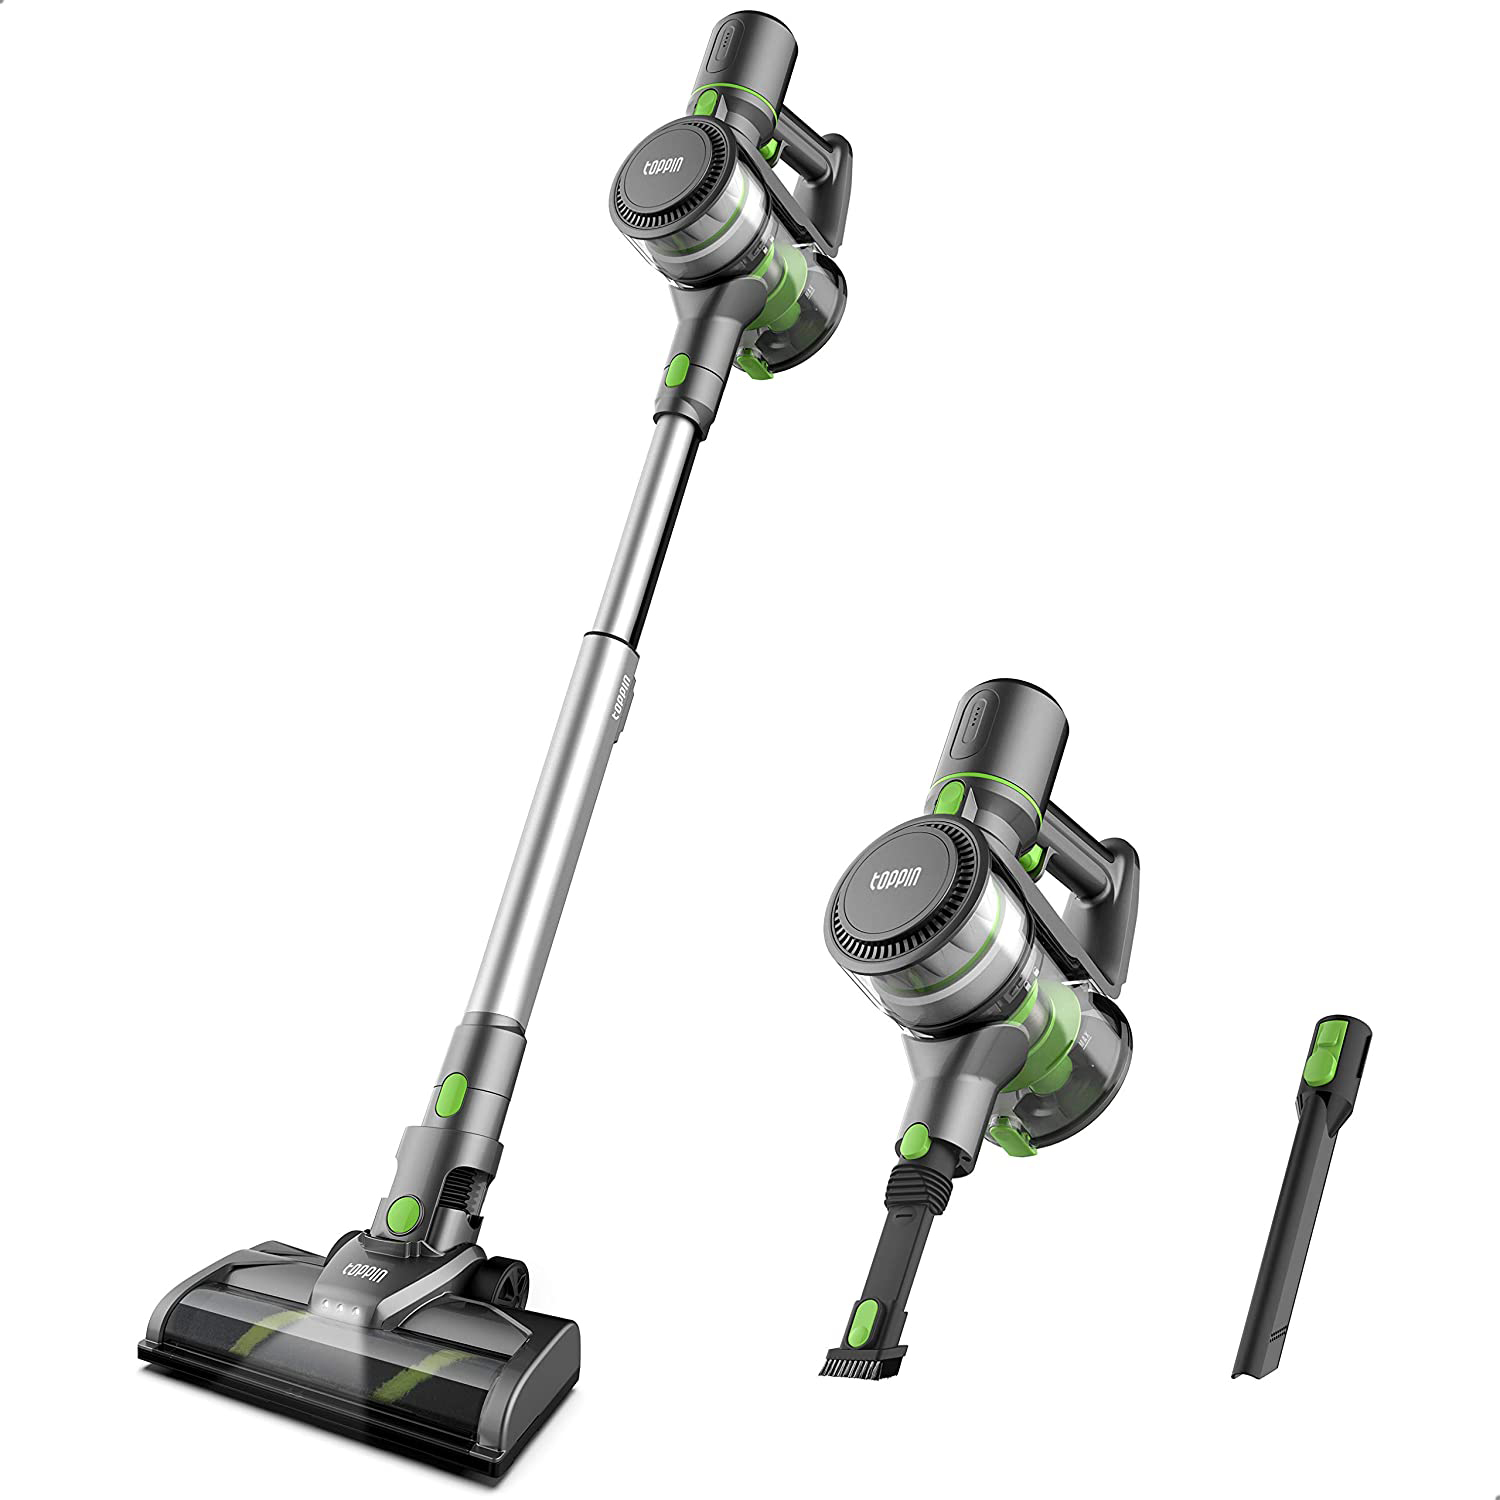 Toppin cordless stick vacuum cleaner